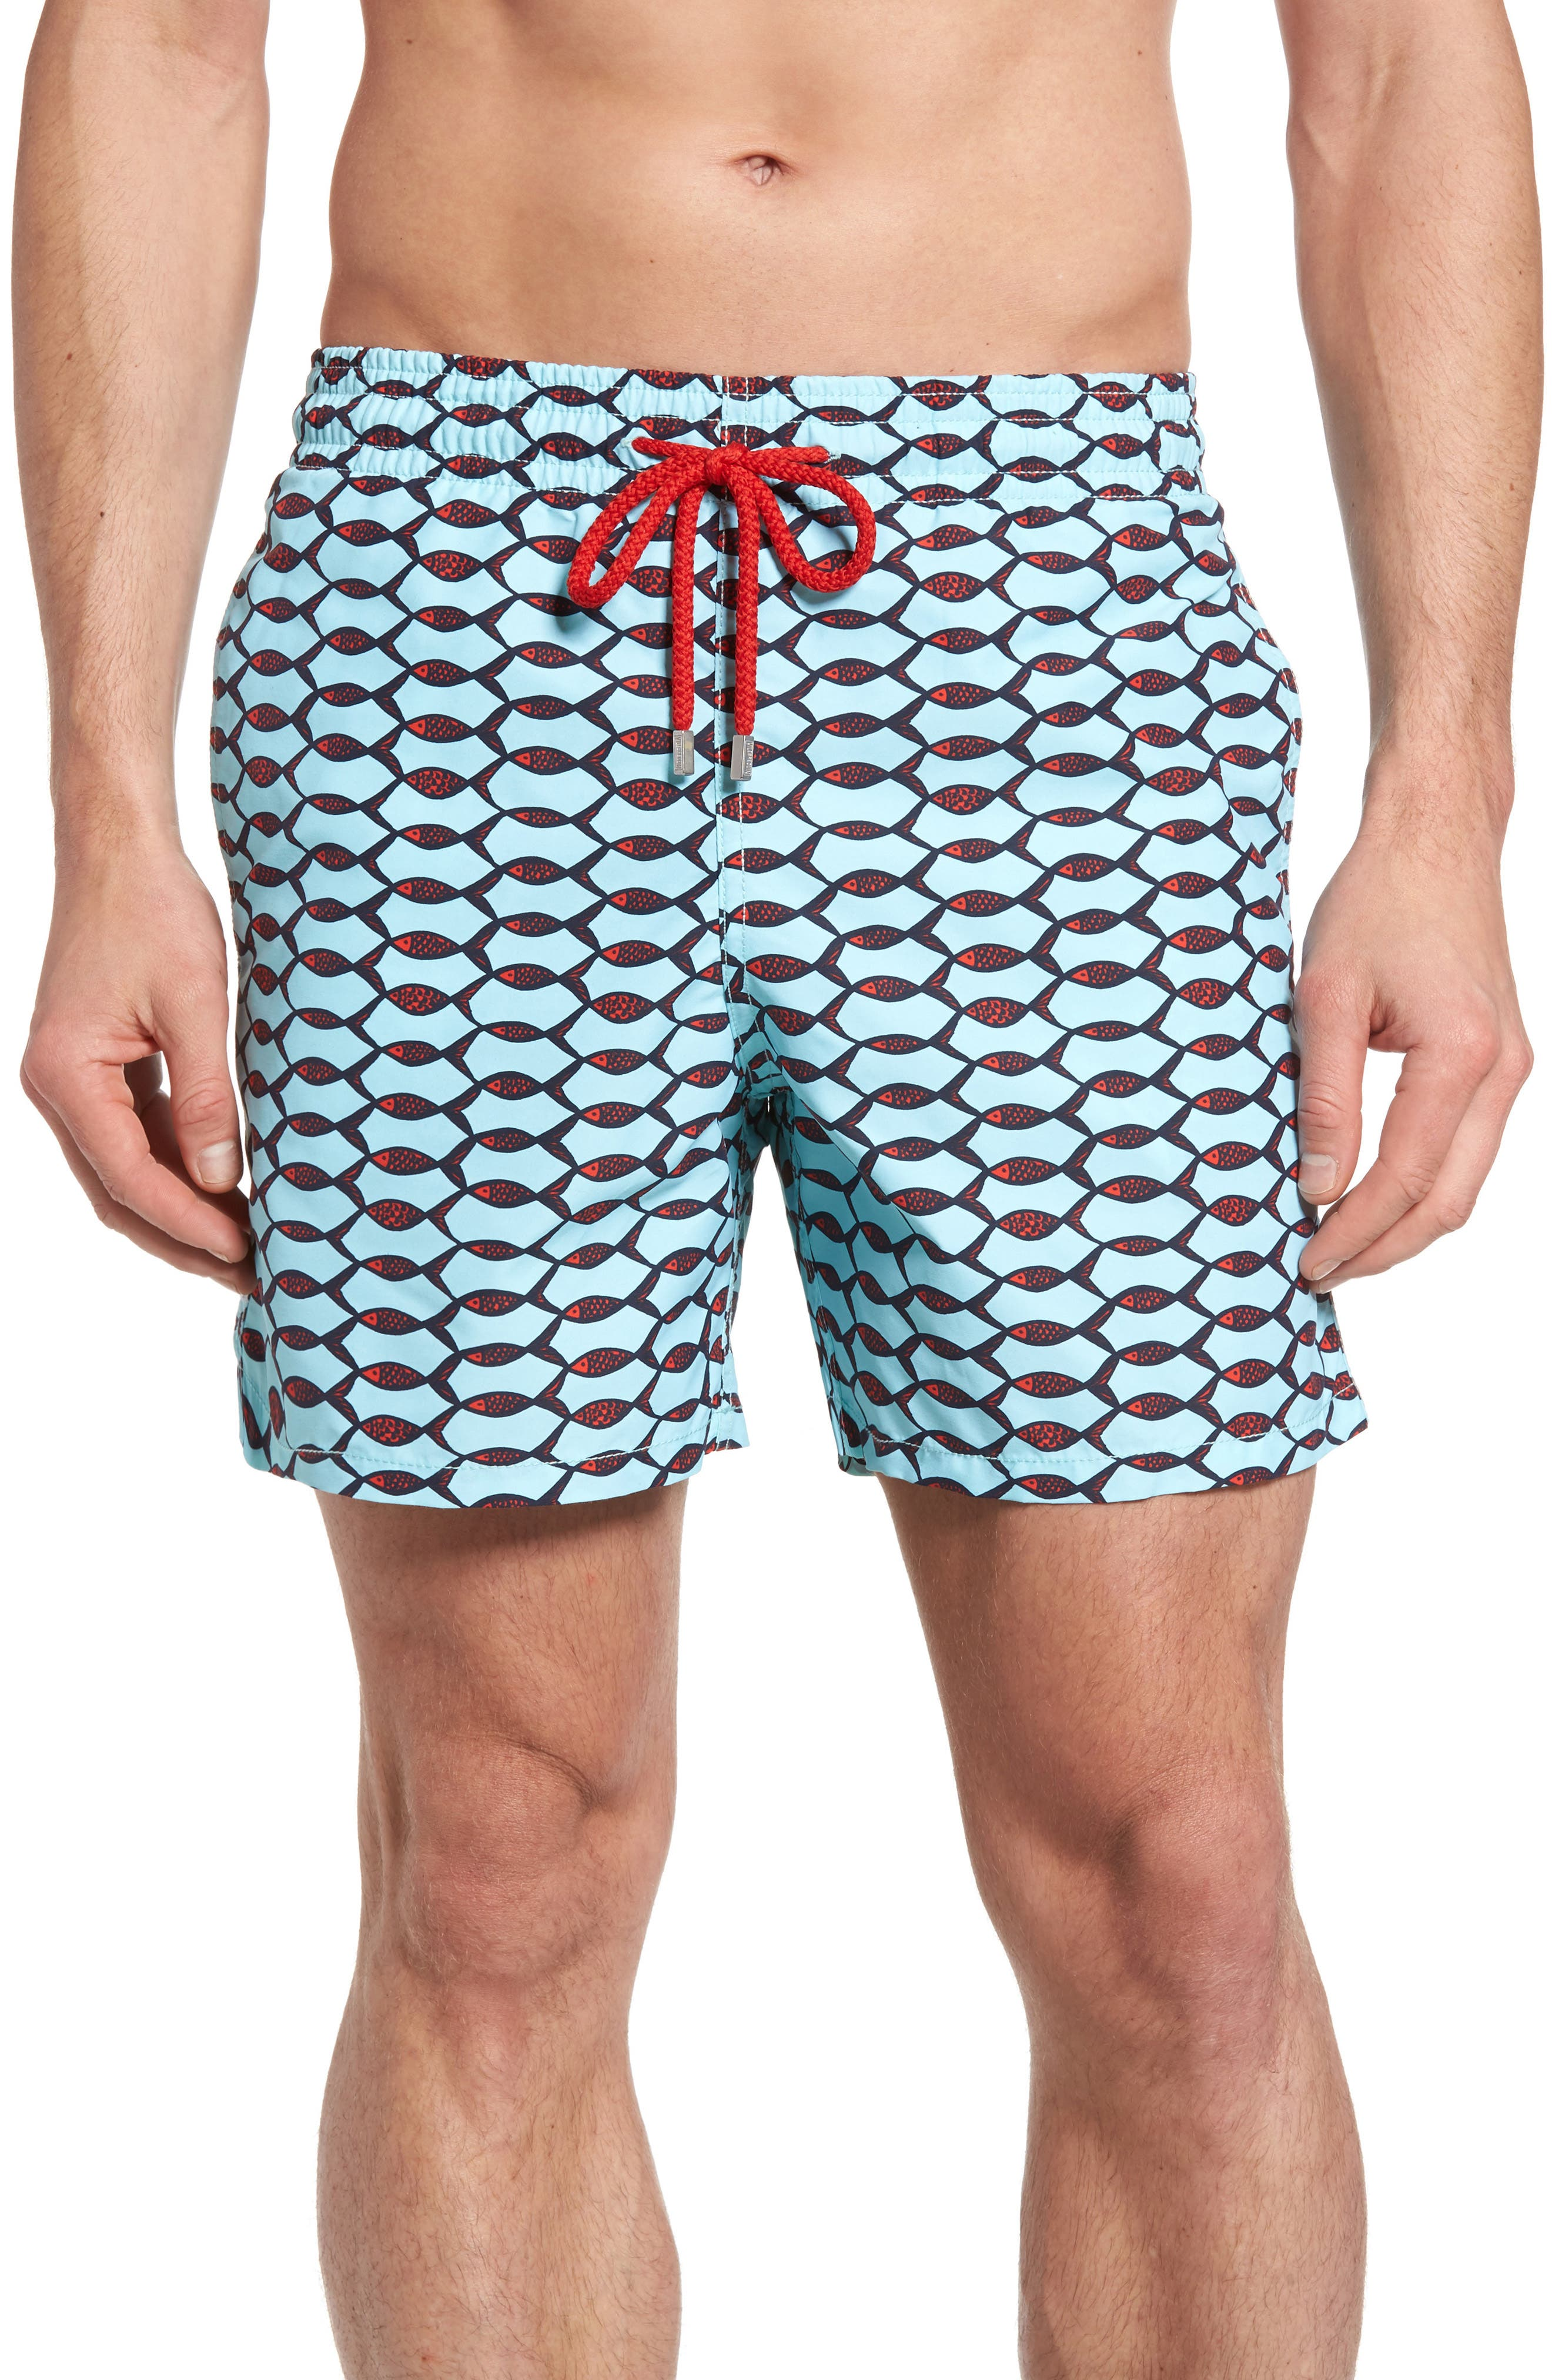 Moorea Fishnet Print Swim Trunks,                             Main thumbnail 1, color,                             FROSTED BLUE